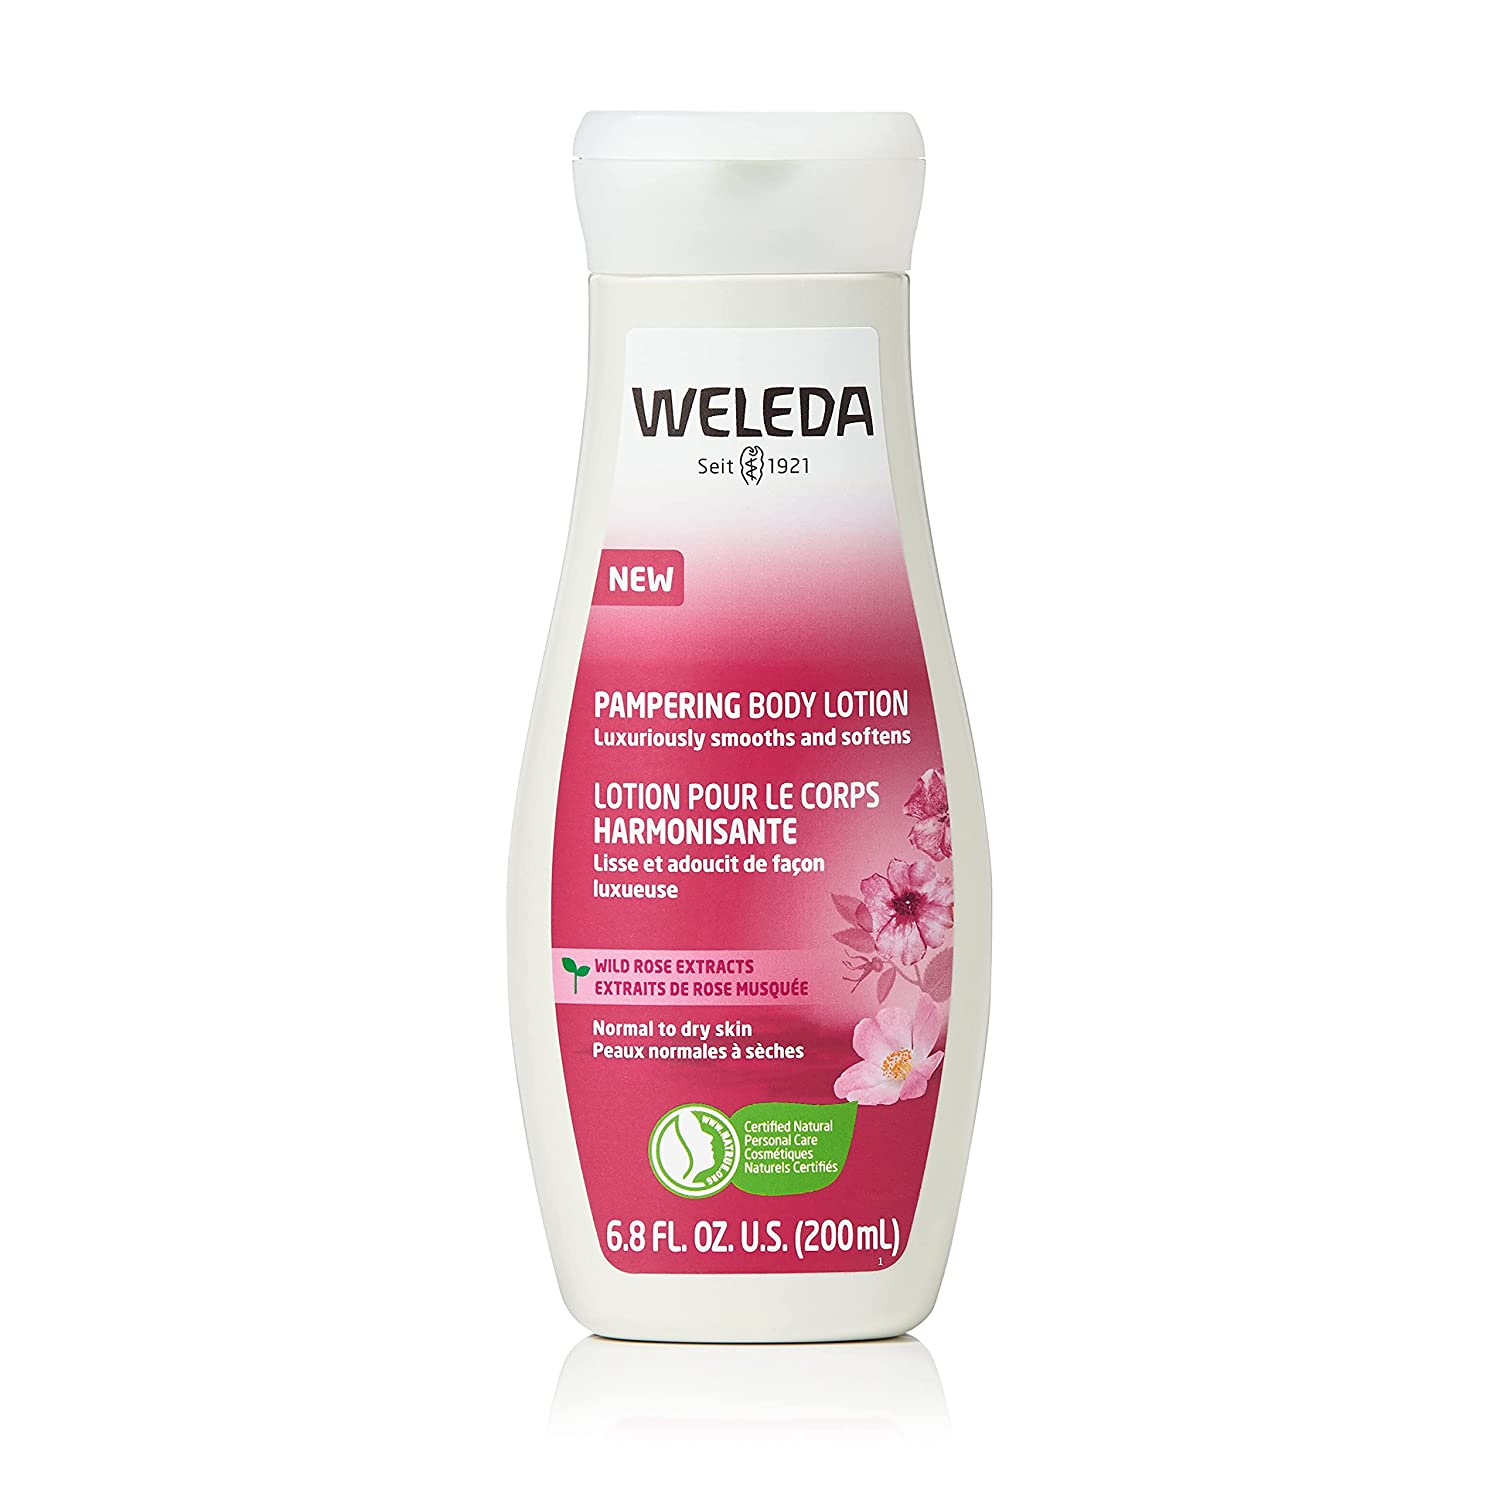 Weleda Pampering Wild Rose Body Lotion, 6.8 Fluid Ounces, Plant Rich Moisturizer with Wild Rose Oil, Jojoba Oil and Shea Butter